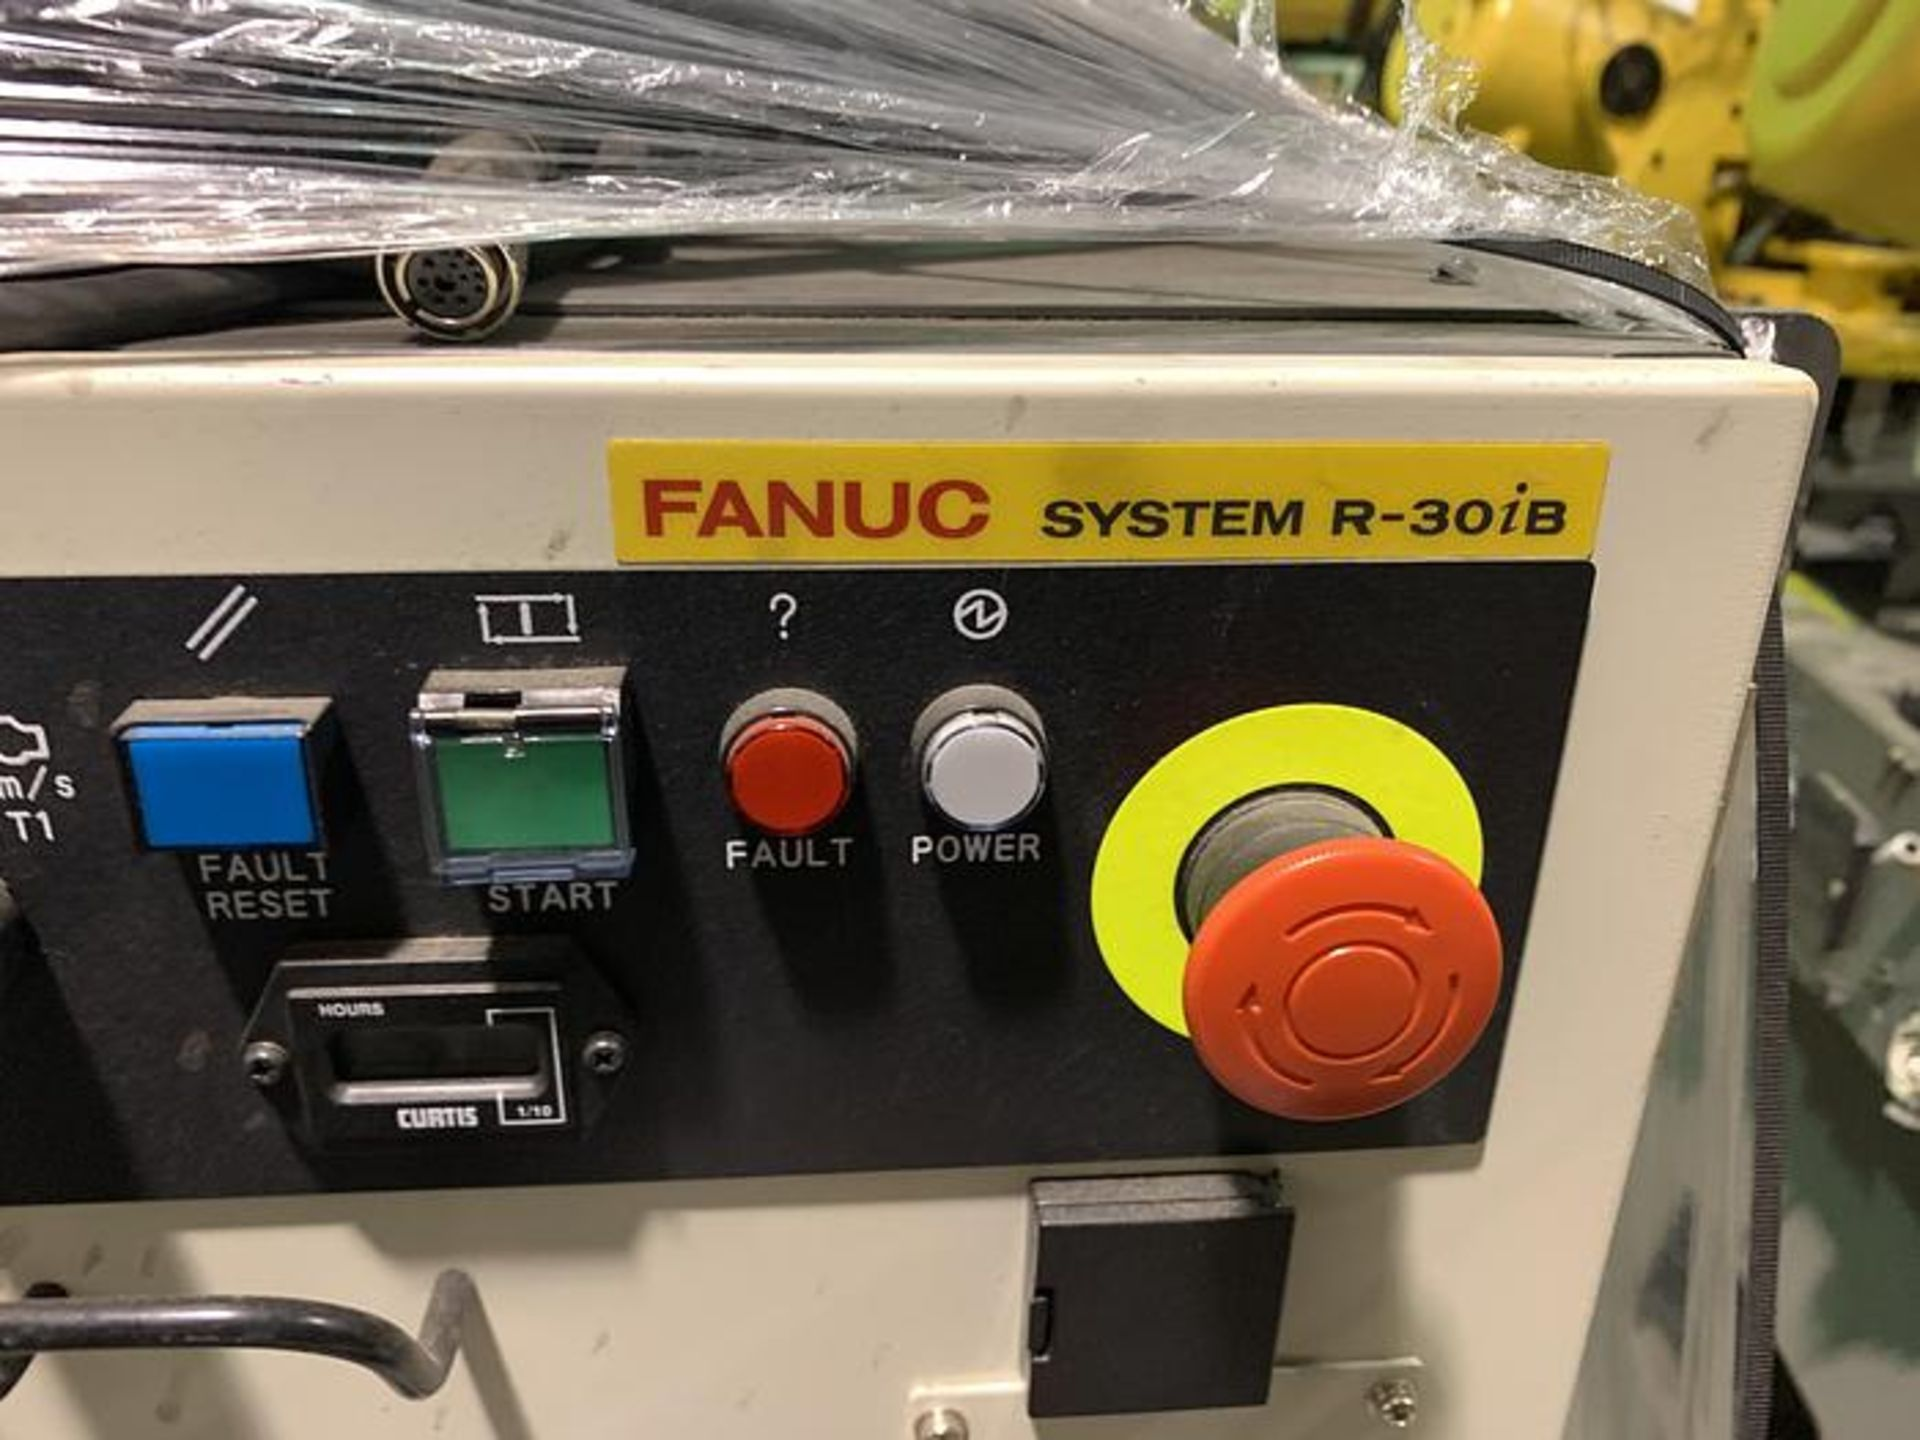 FANUC ROBOT R2000iC/125L 6 AXIS ROBOT WITH R30iB CONTROLLER, IR VISION, SN 194246, CABLES & TEACH - Image 12 of 19